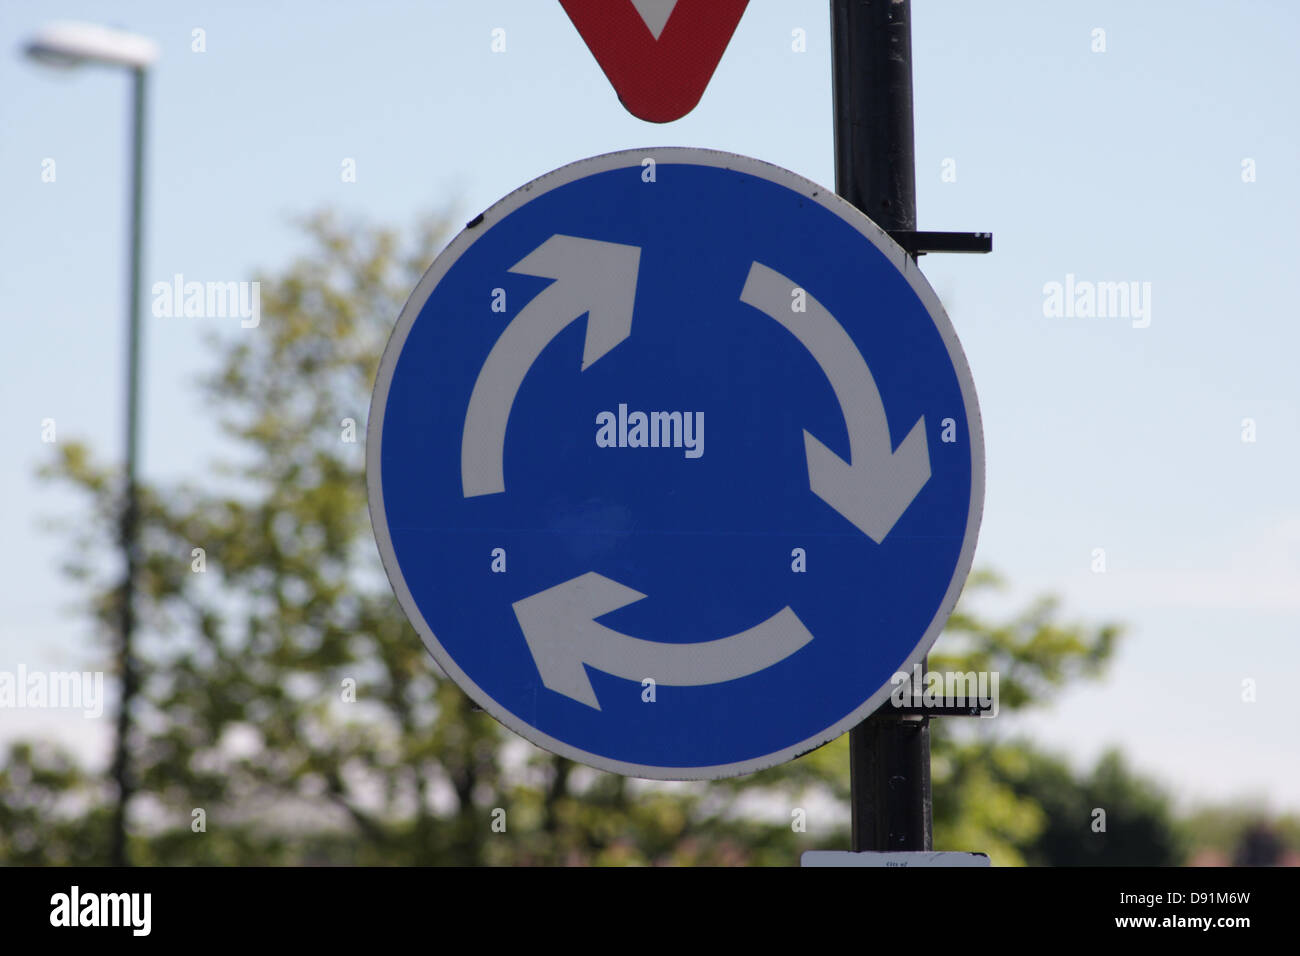 Mini Roundabout road sign. A British highway code sign, a round circle with arrows indicating a mini roundabout - Stock Image